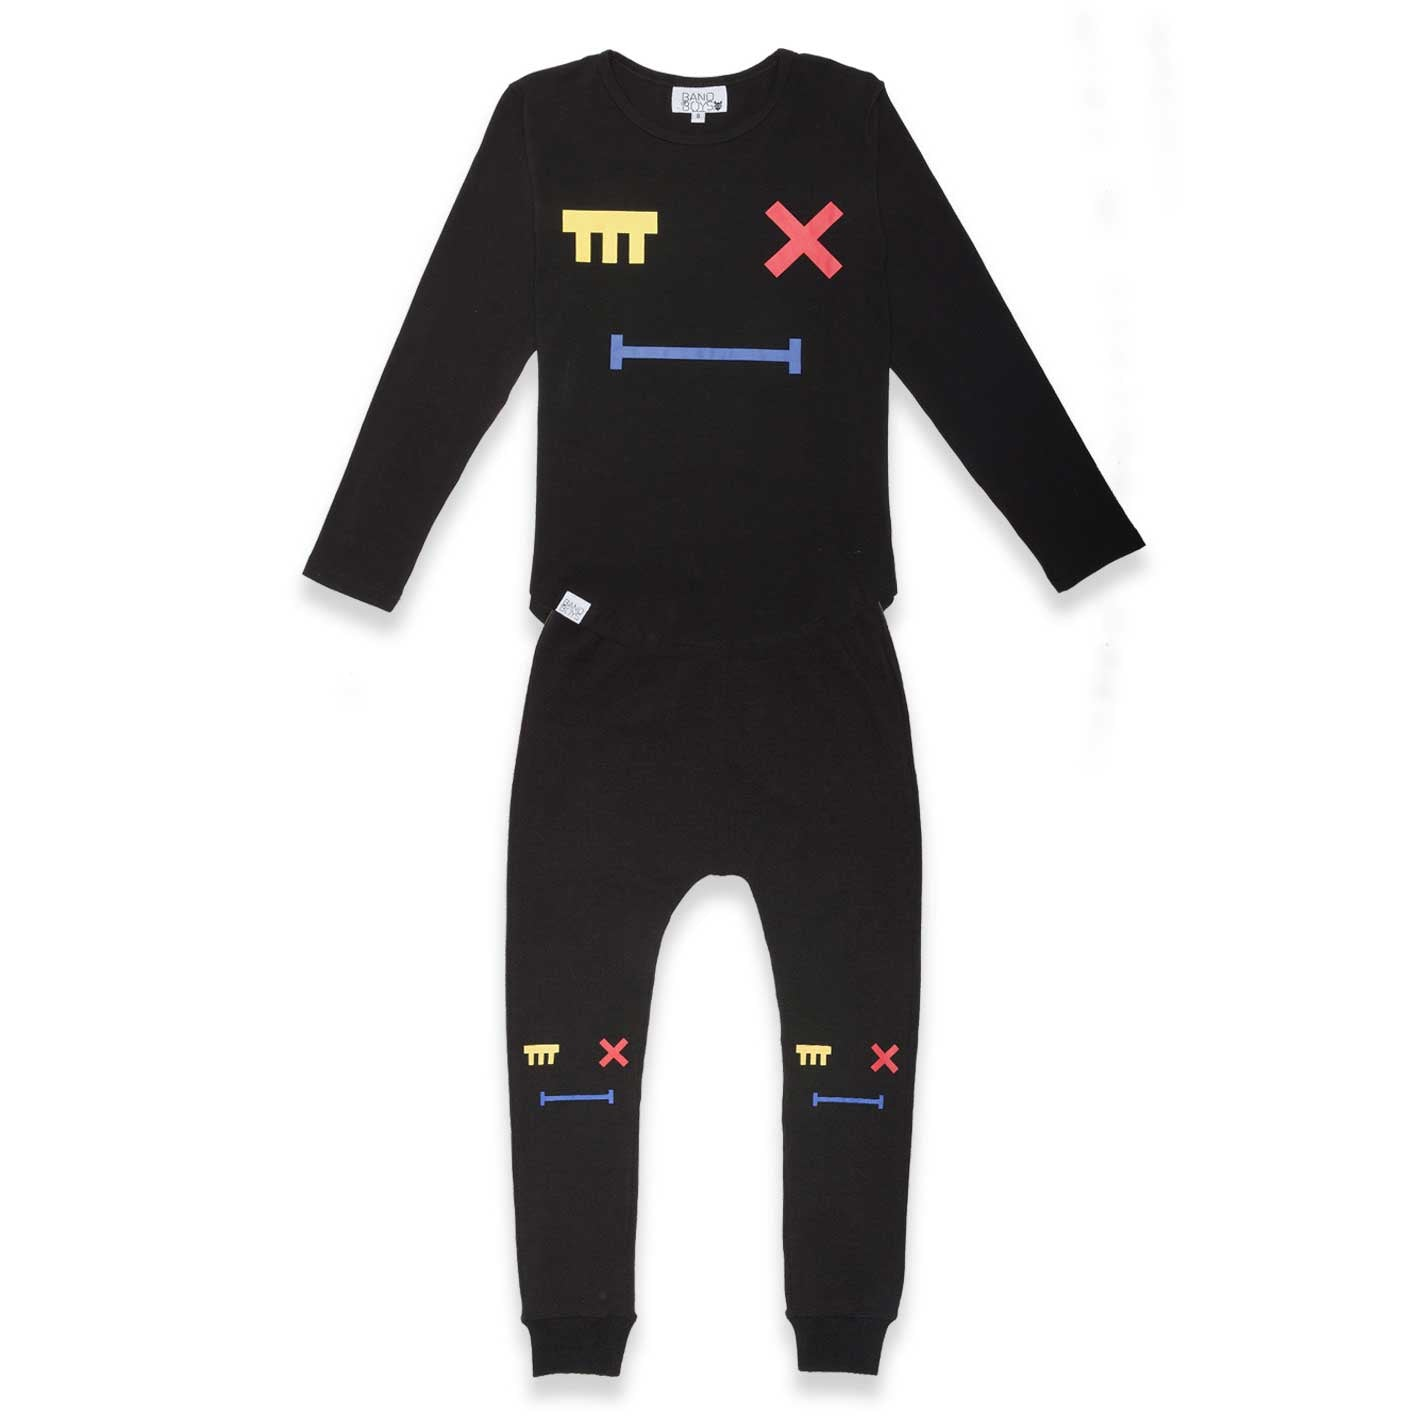 Cross Eye pj's Black